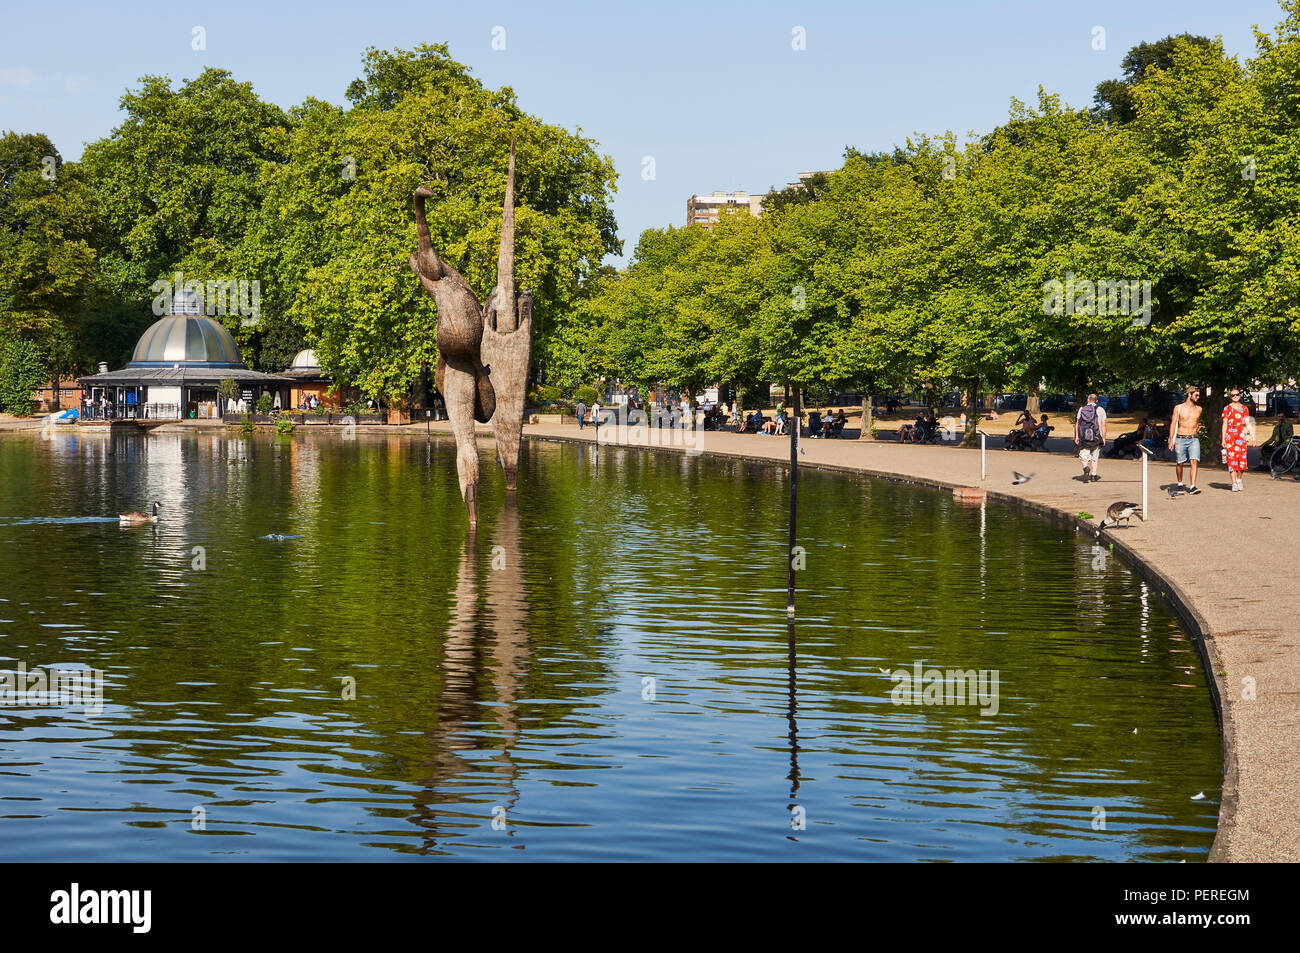 West Boating Lake in Victoria Park, East London, UK, in August, during the 2018 heatwave - Stock Image